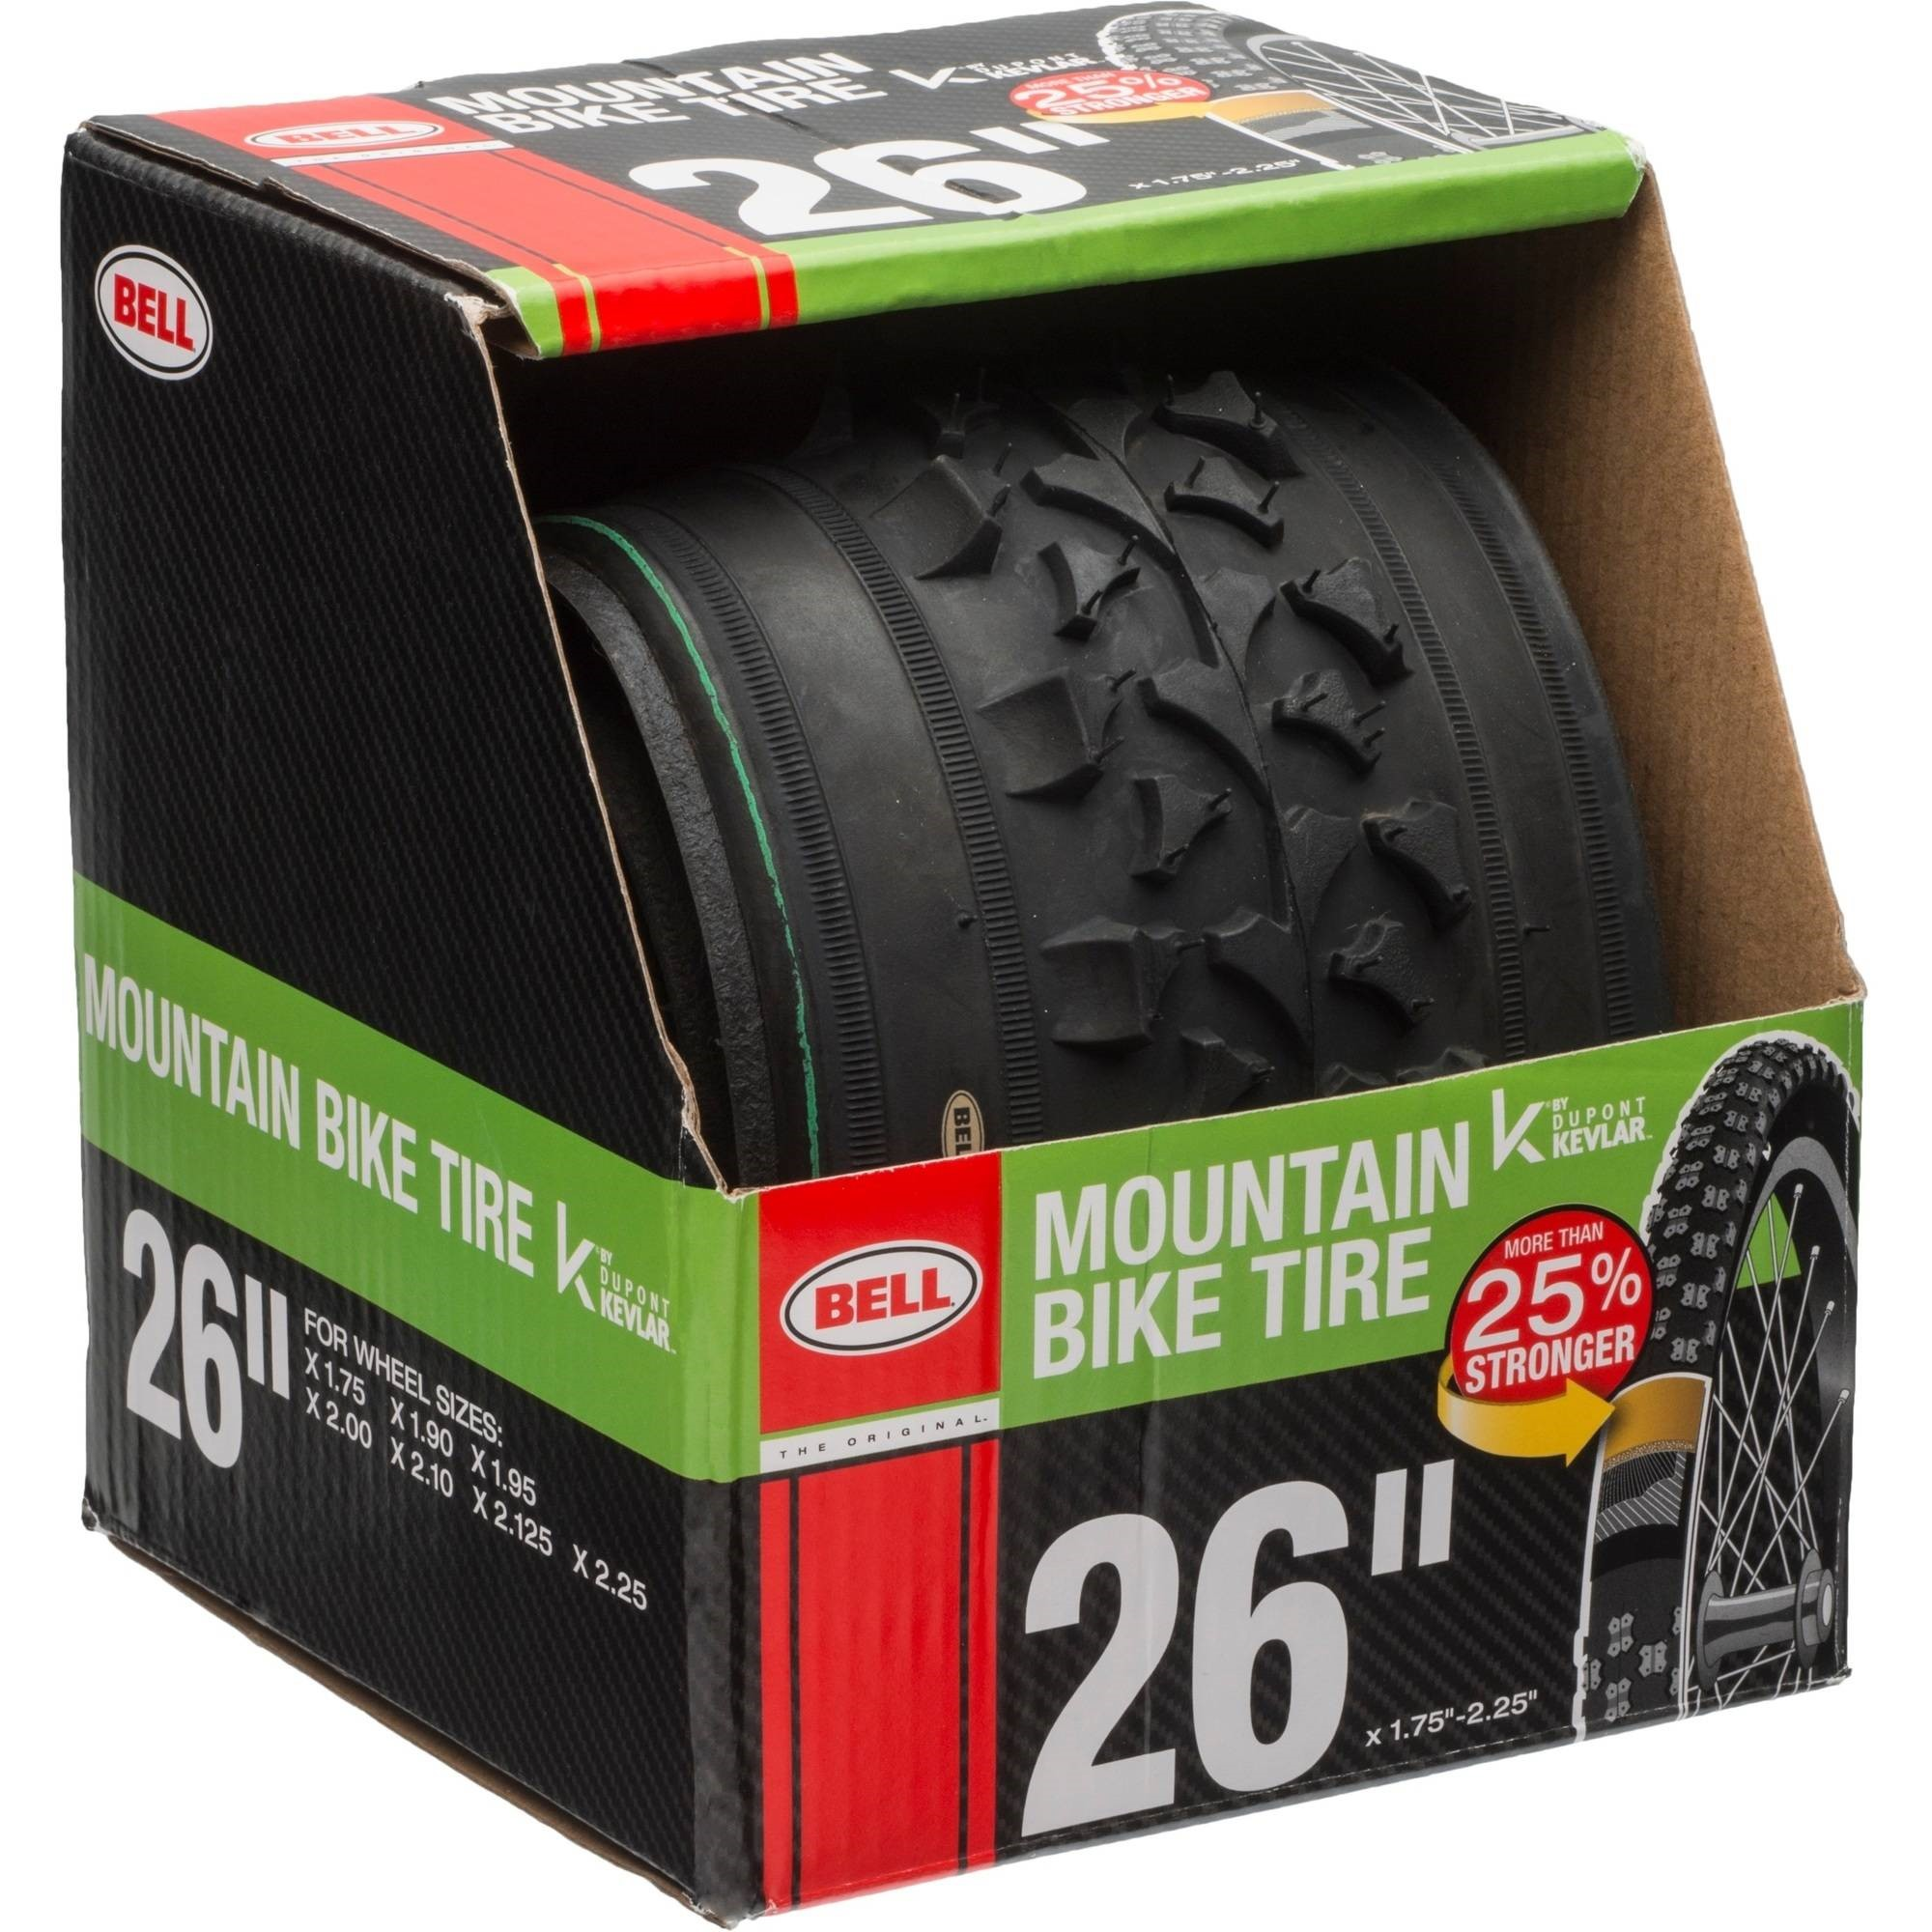 "Bell Sports Traction Mountain Bike Tire with Kevlar, 26"" x 1.75-2.25"", Black"